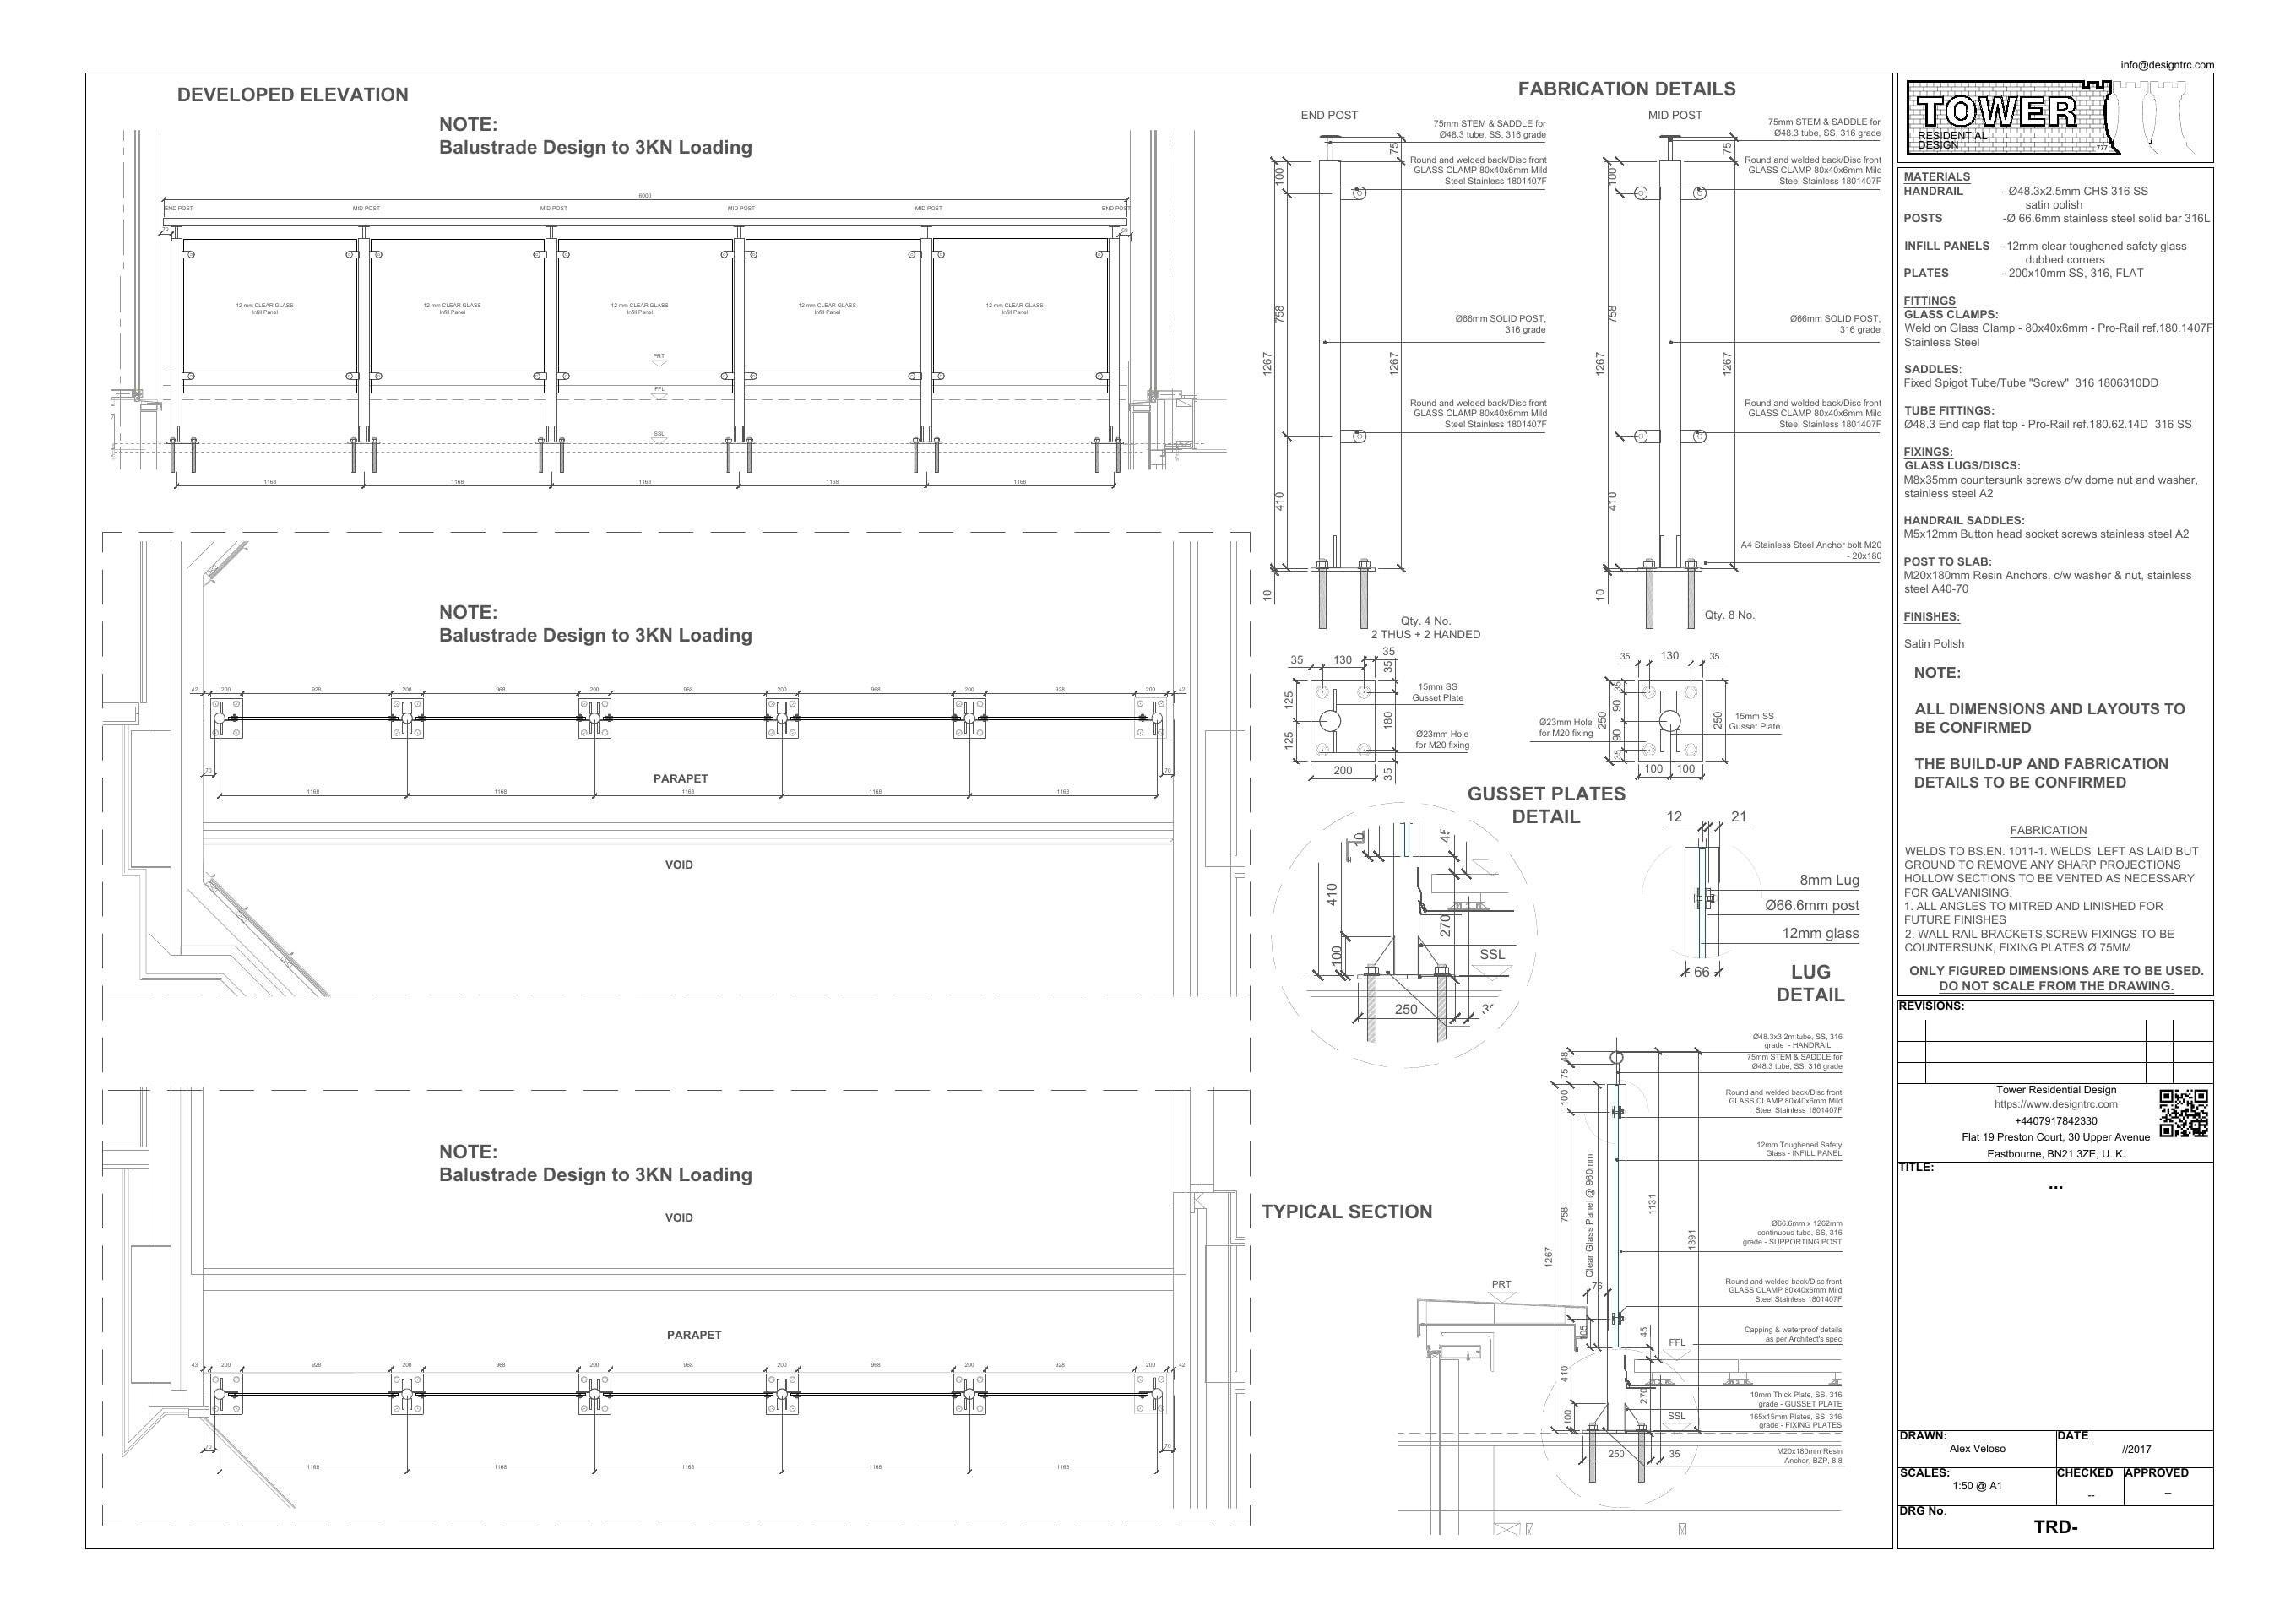 Balcony Fabrication Drawings